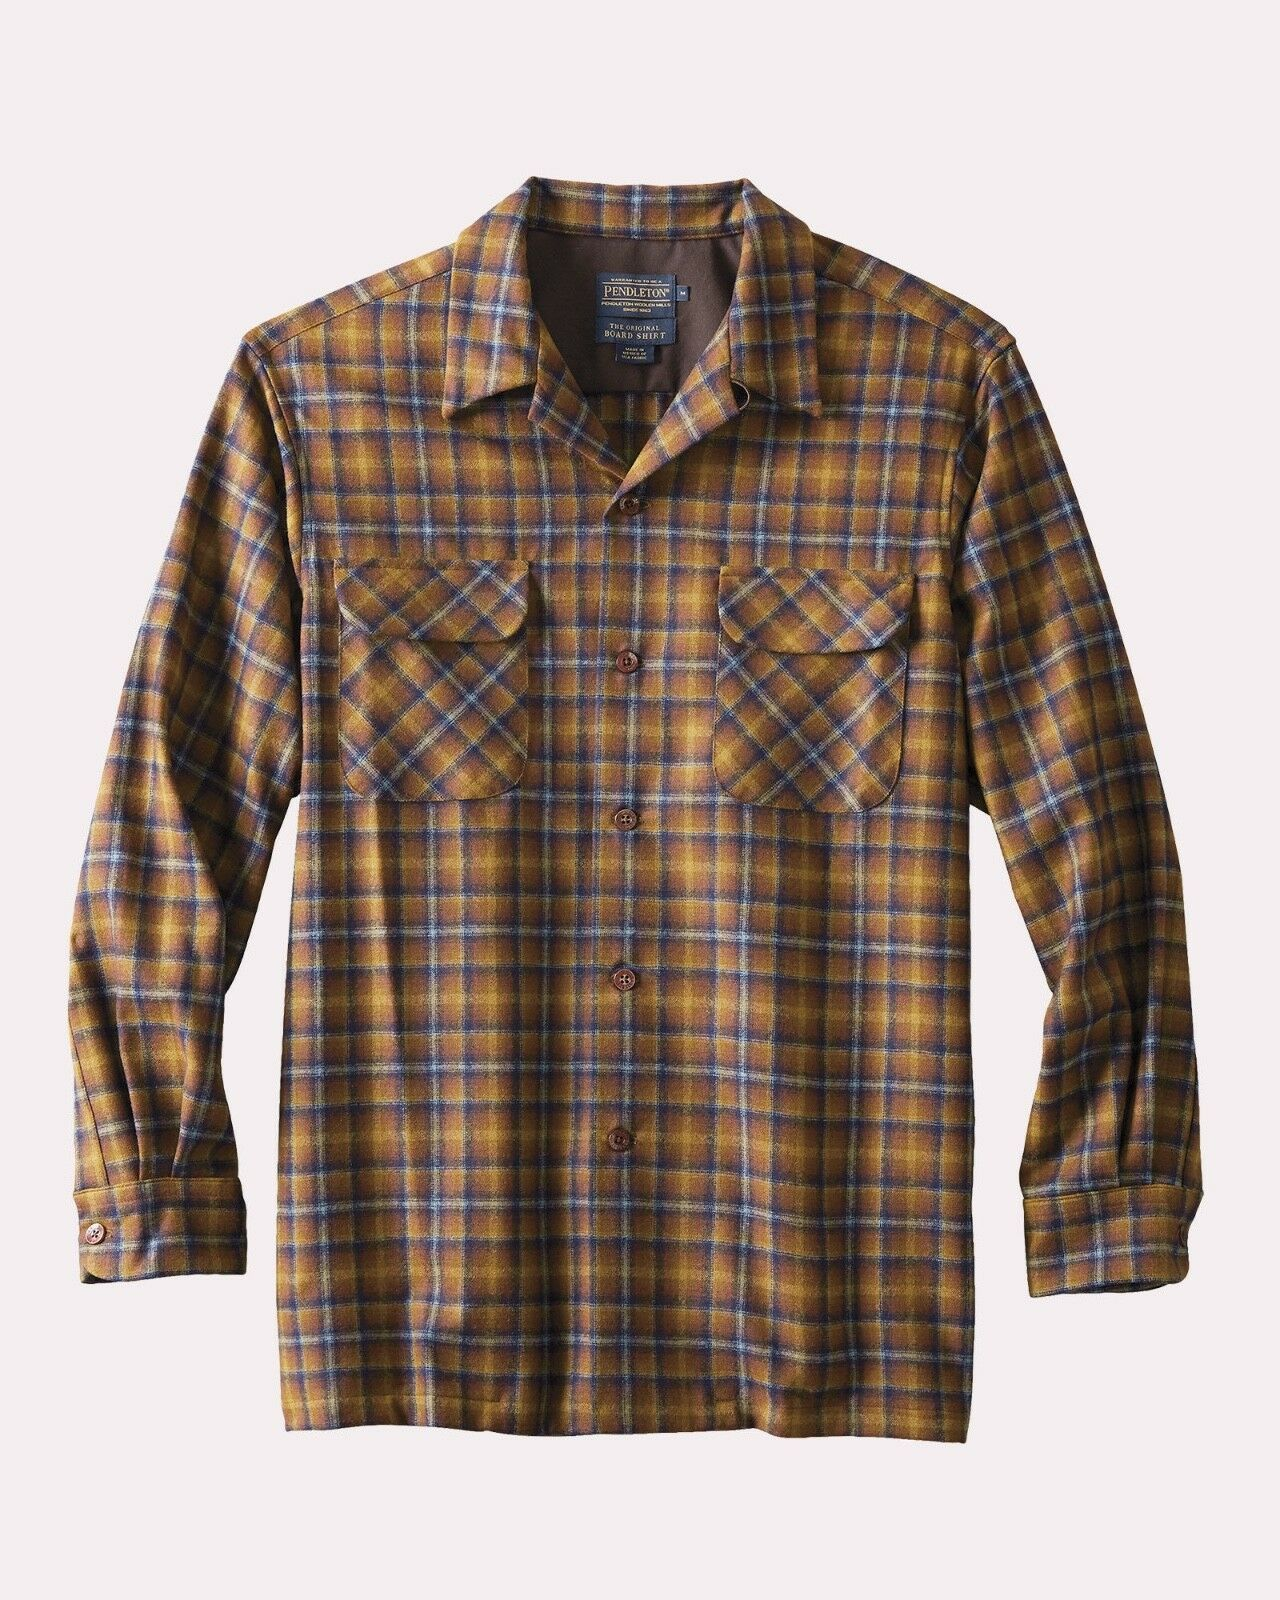 Pendleton Original Board Shirt 100% Umatilla Virgin Wool Classic Fit Multi 32083